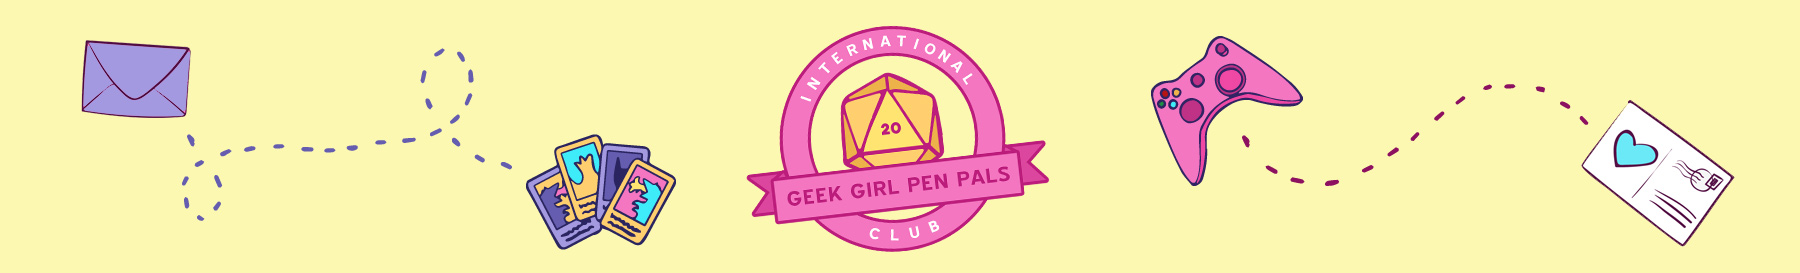 Geek Girl Pen Pals